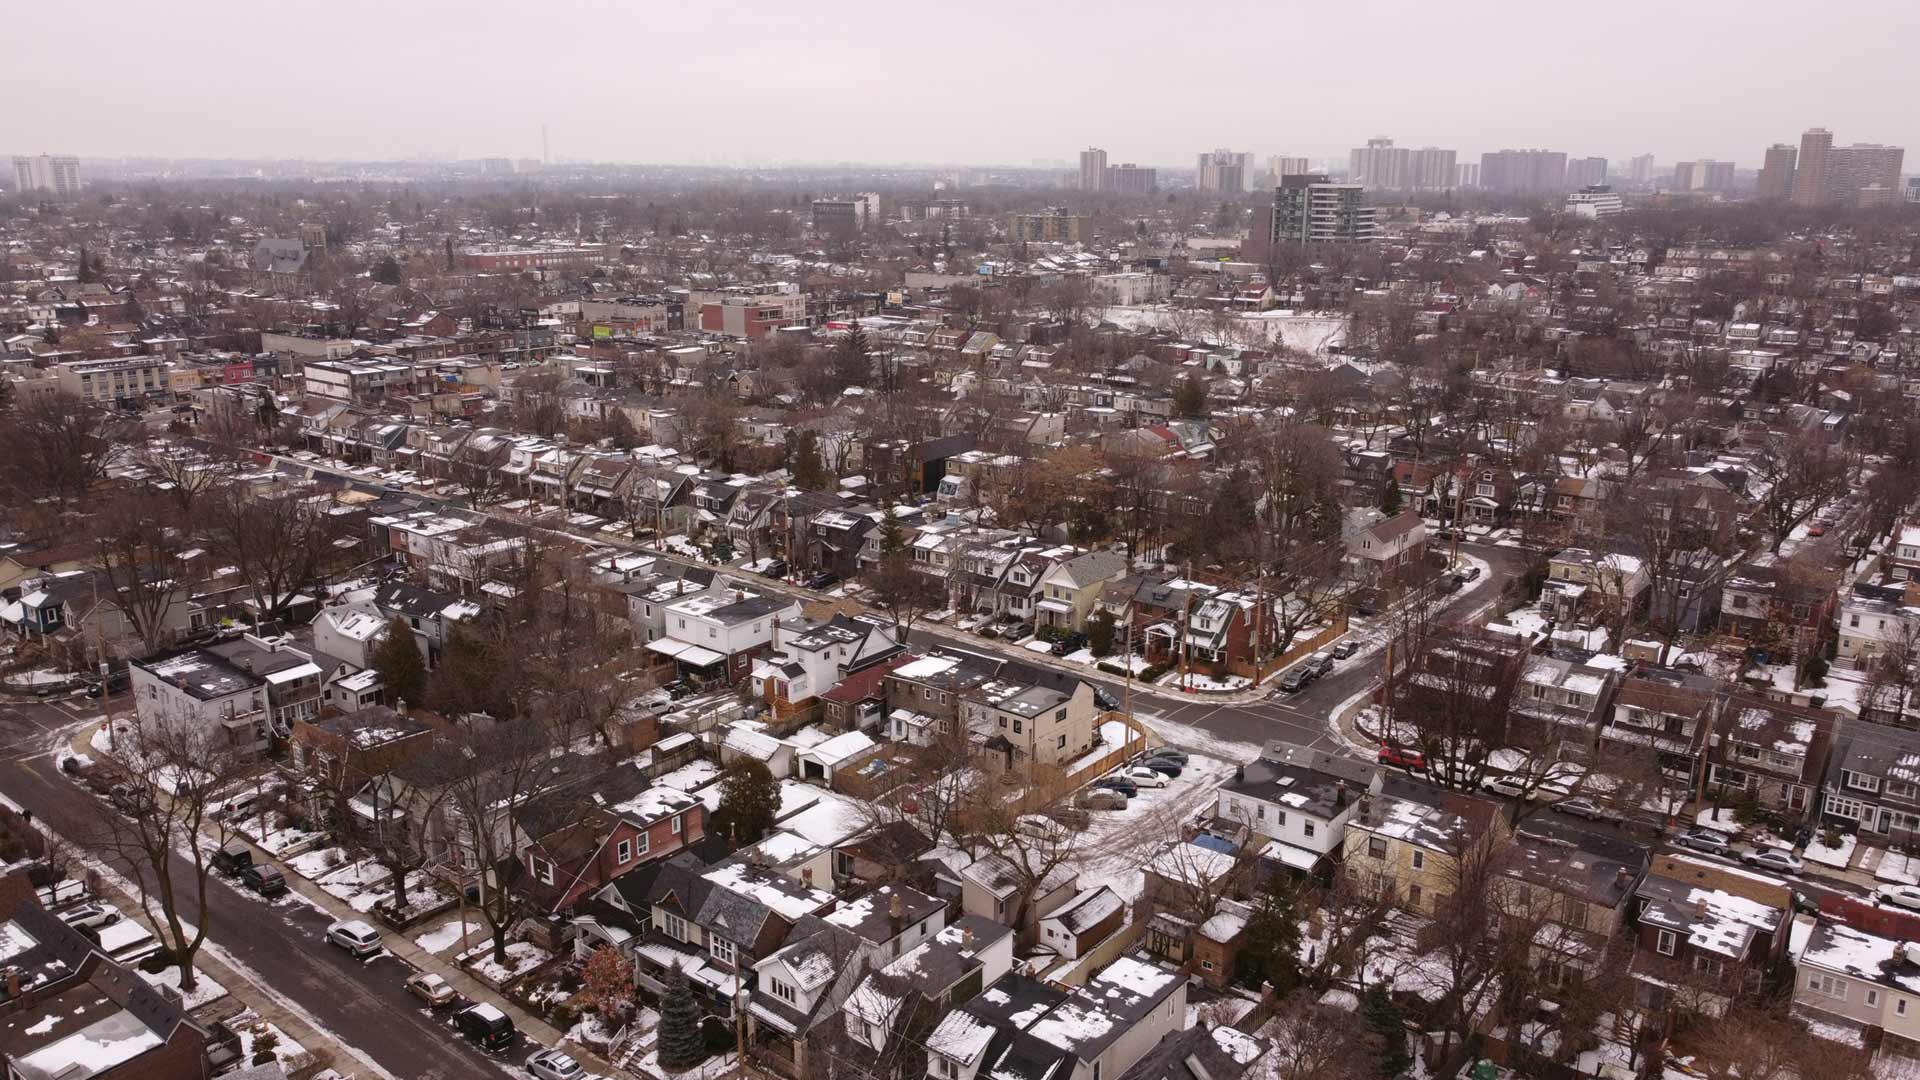 An aerial view of a Canadian suburb during winter.